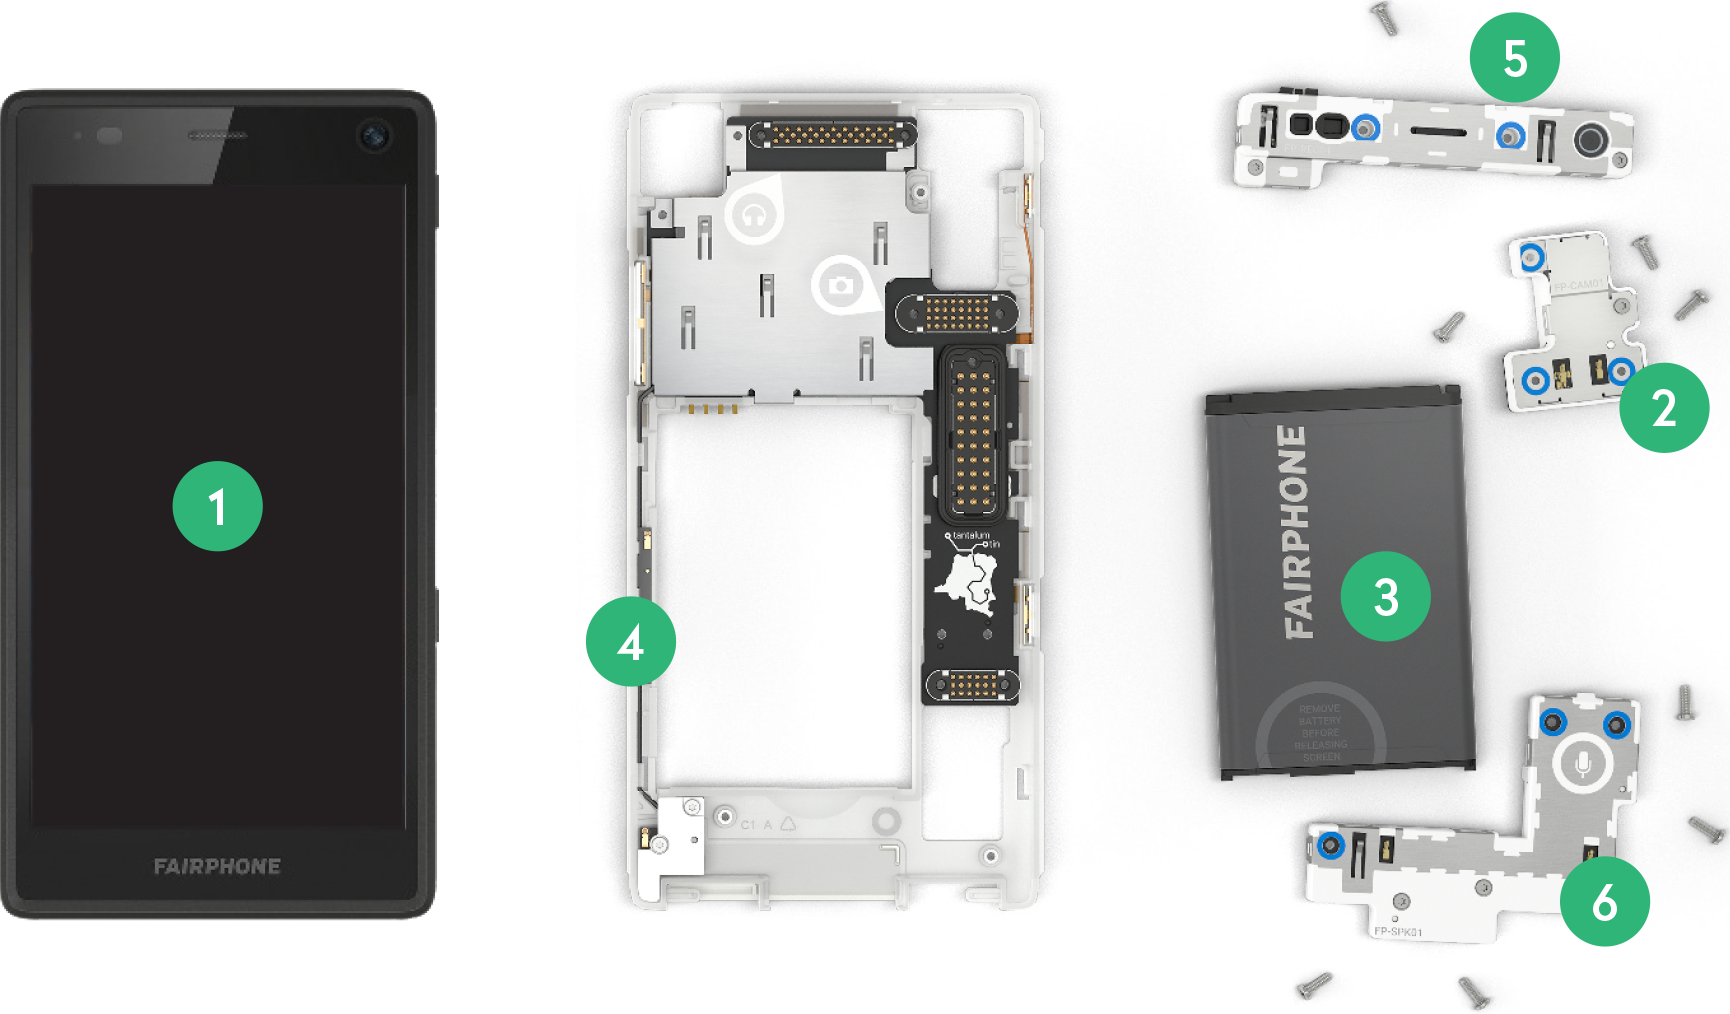 fairphone_modulok_sparepartsheader.png